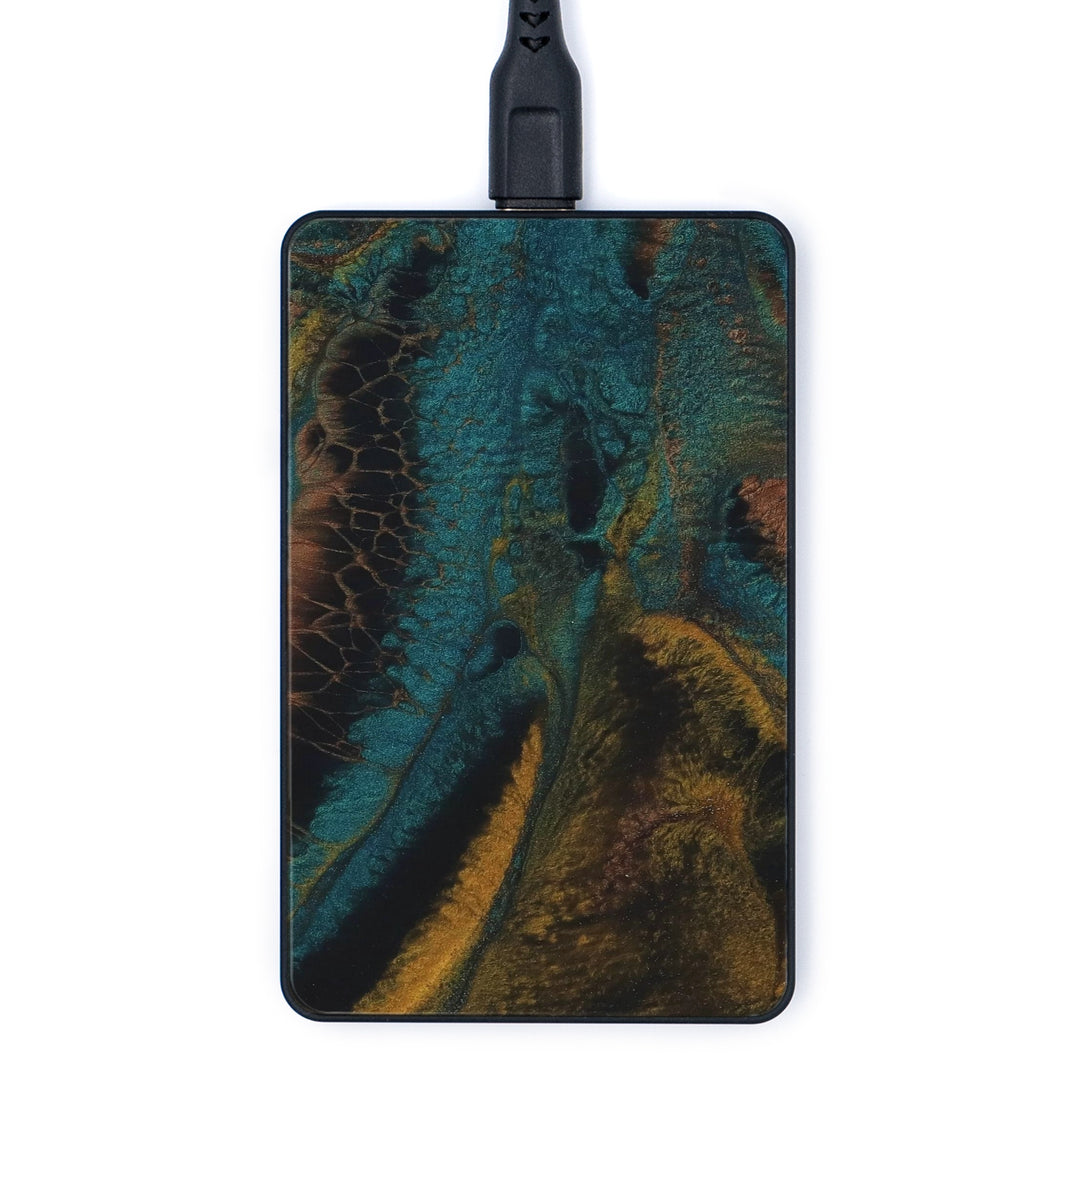 Thin ResinArt Wireless Charger - Jayendra (Teal & Gold, 347718)